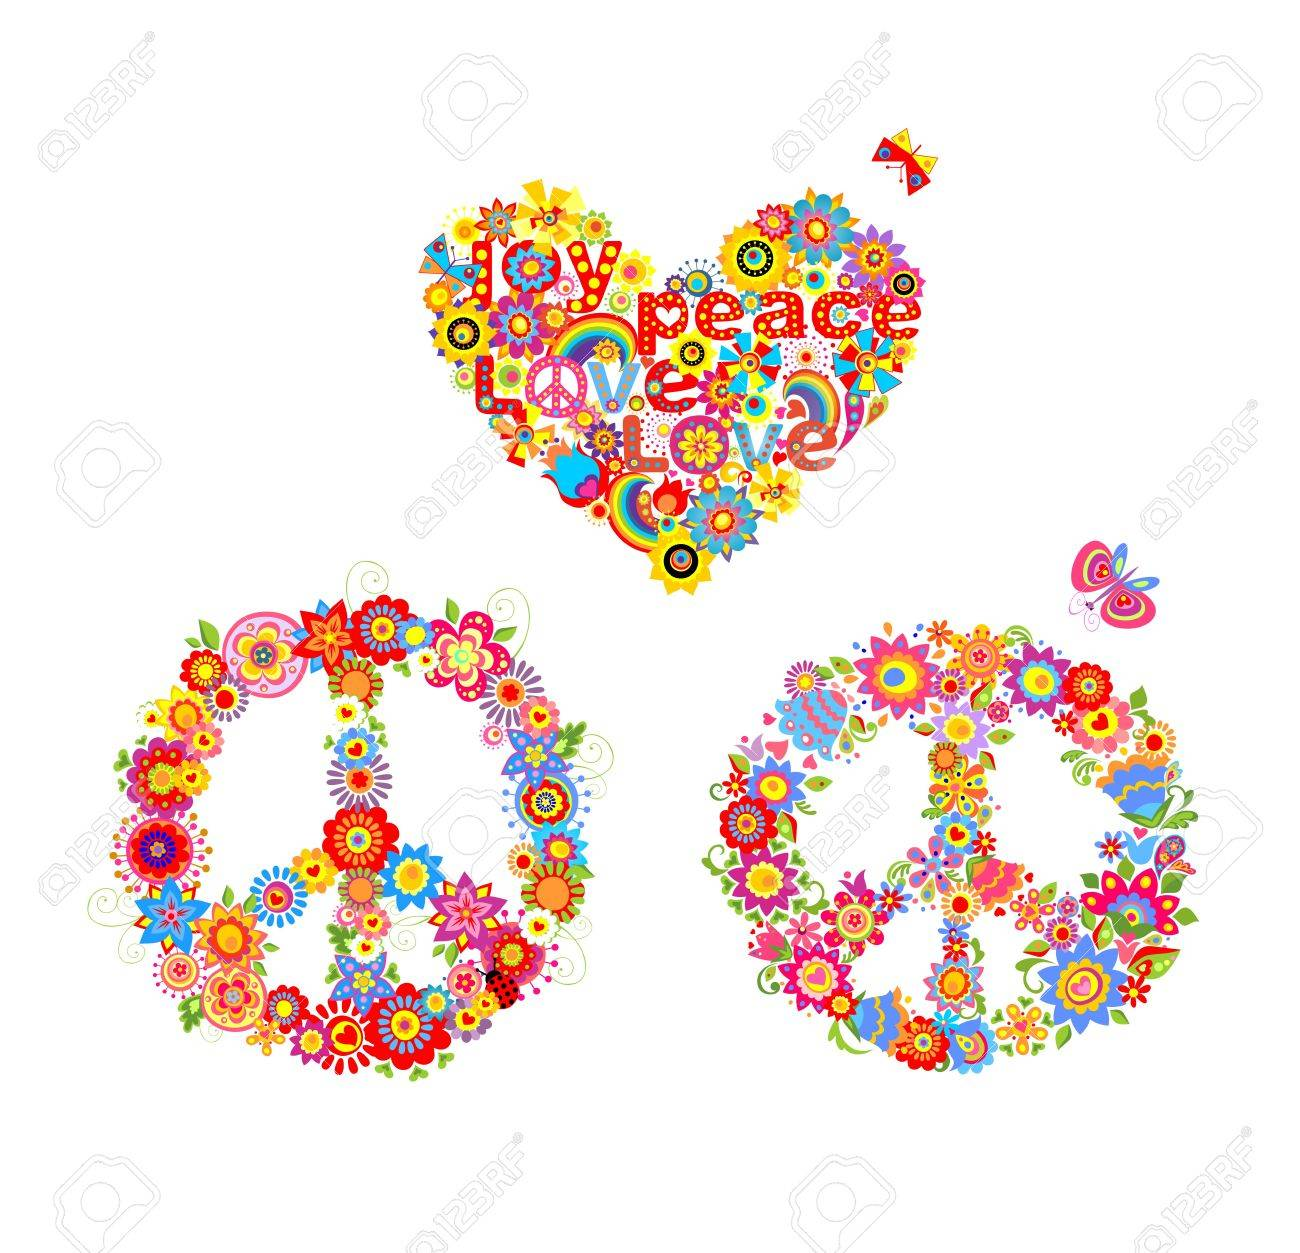 Hippie applique with peace flower symbol and heart flower shape hippie applique with peace flower symbol and heart flower shape with rainbow stock vector 65451849 biocorpaavc Choice Image